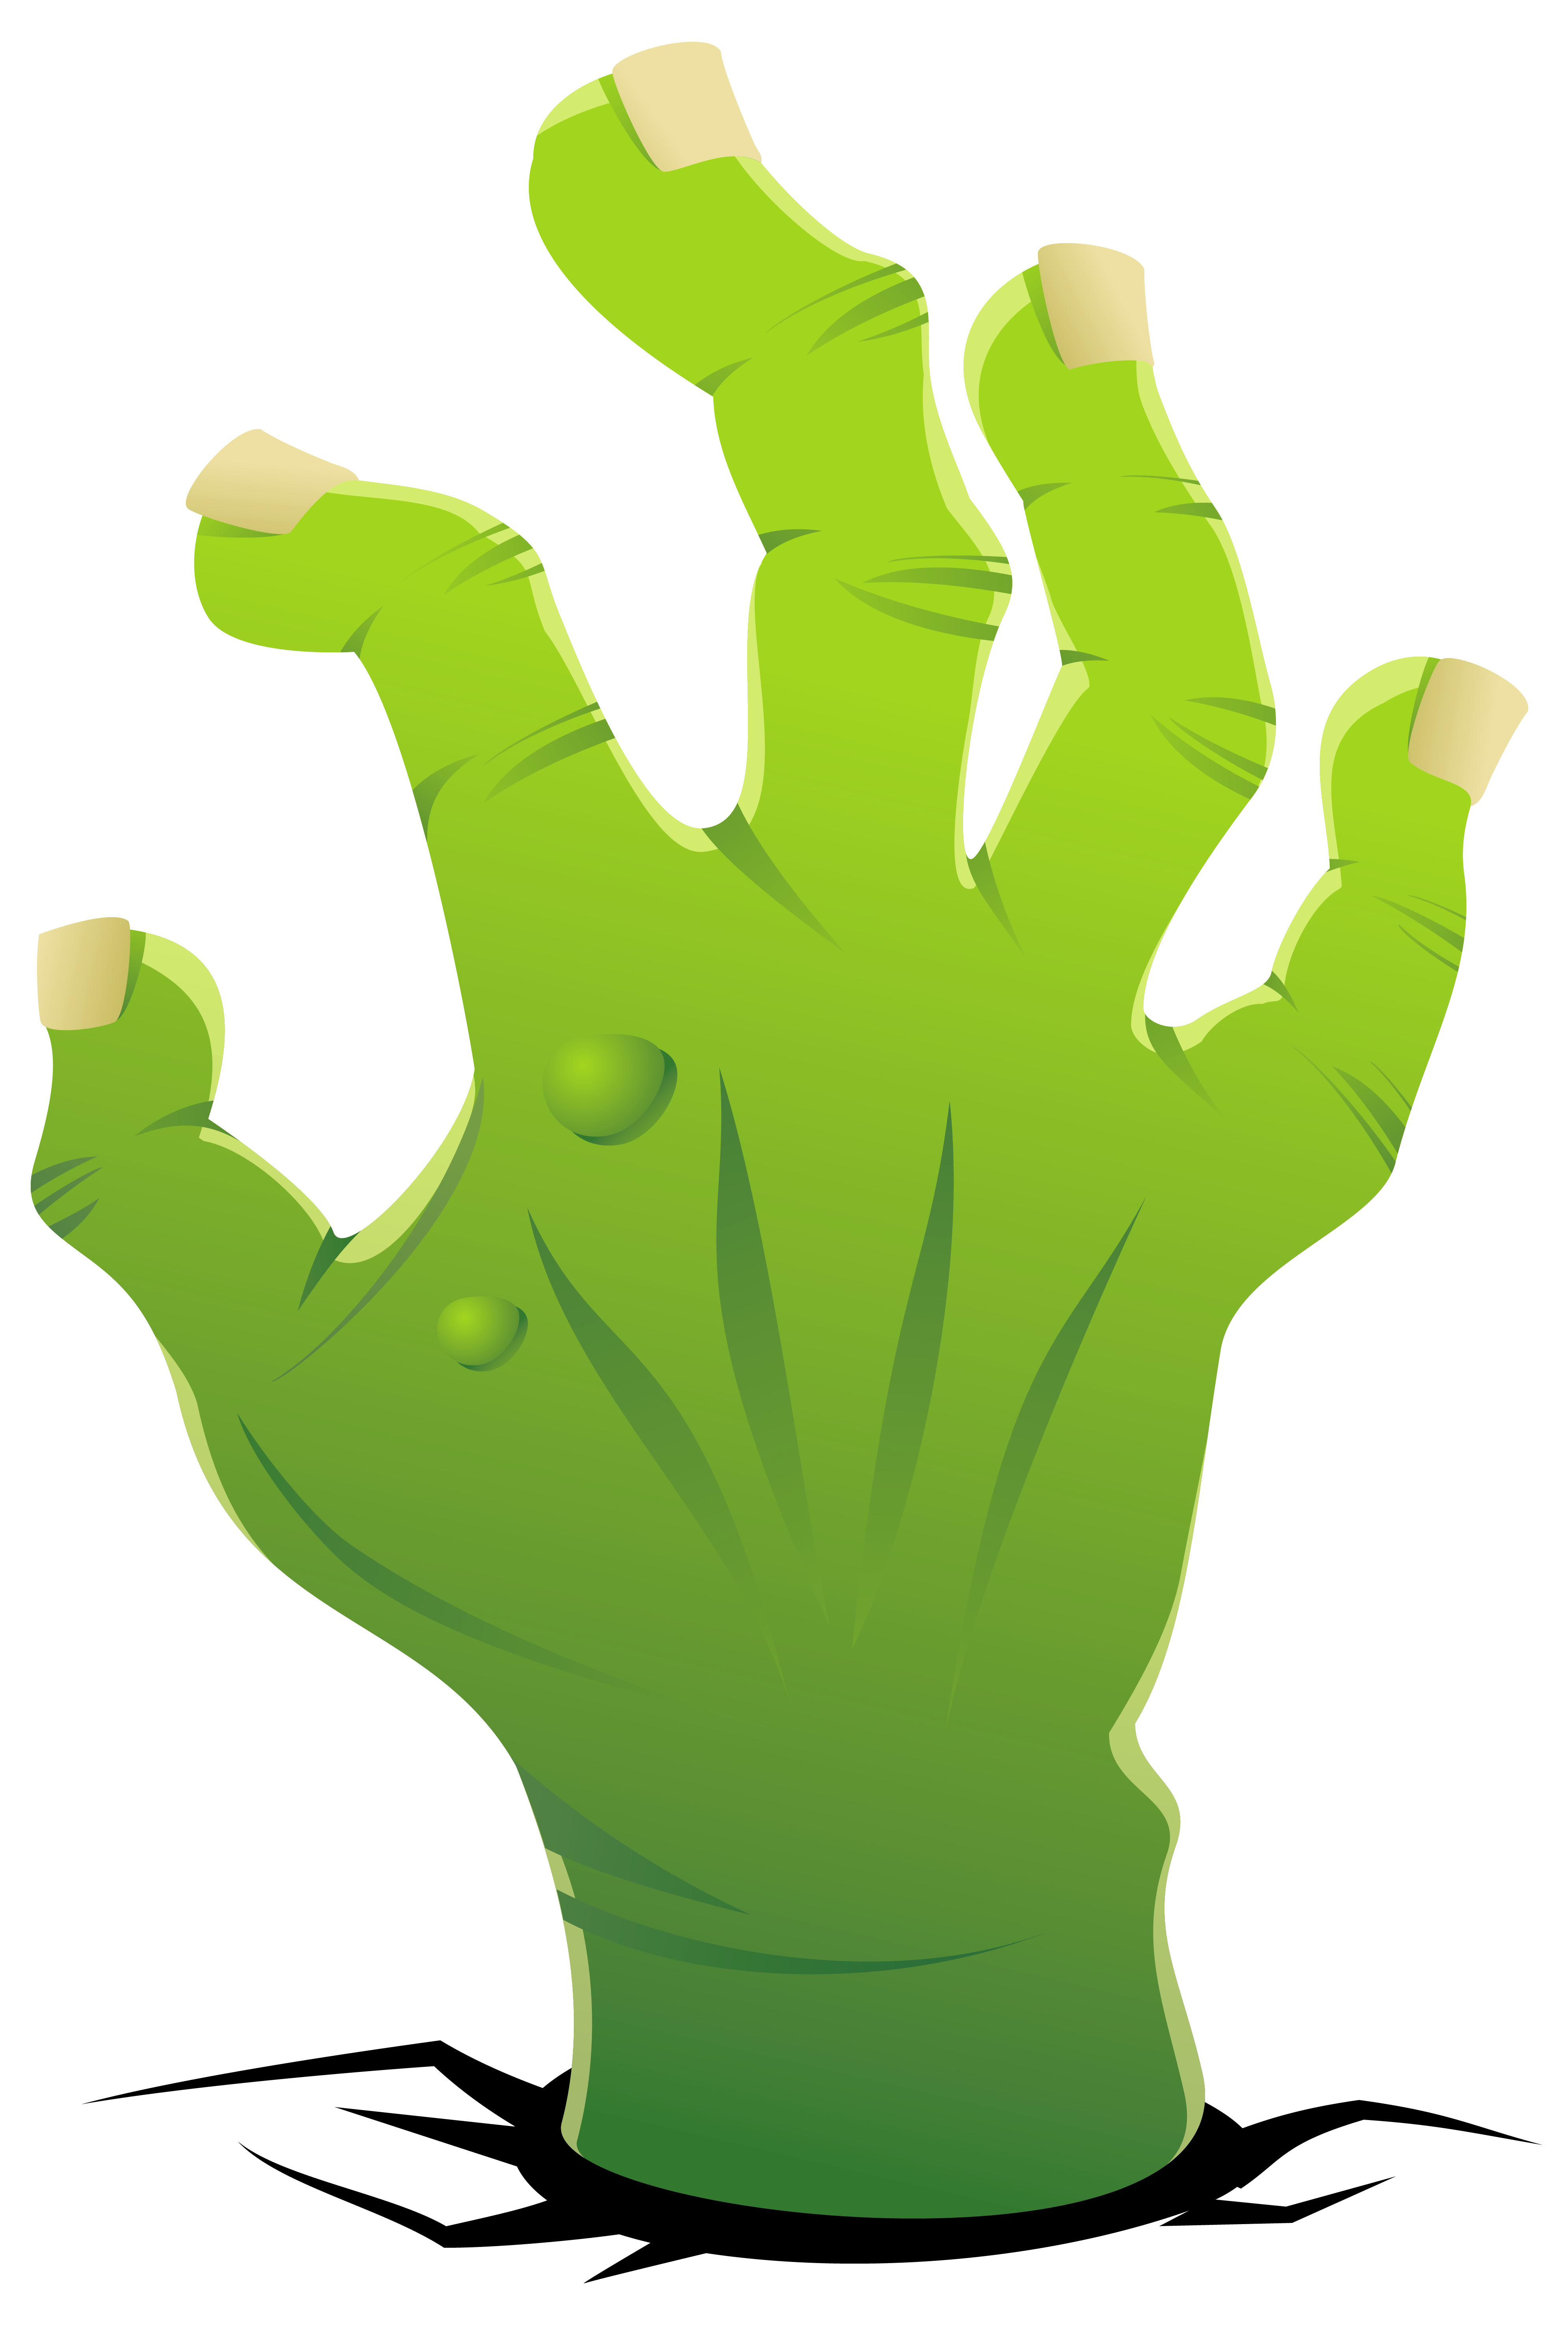 Zombie hand clipart image.